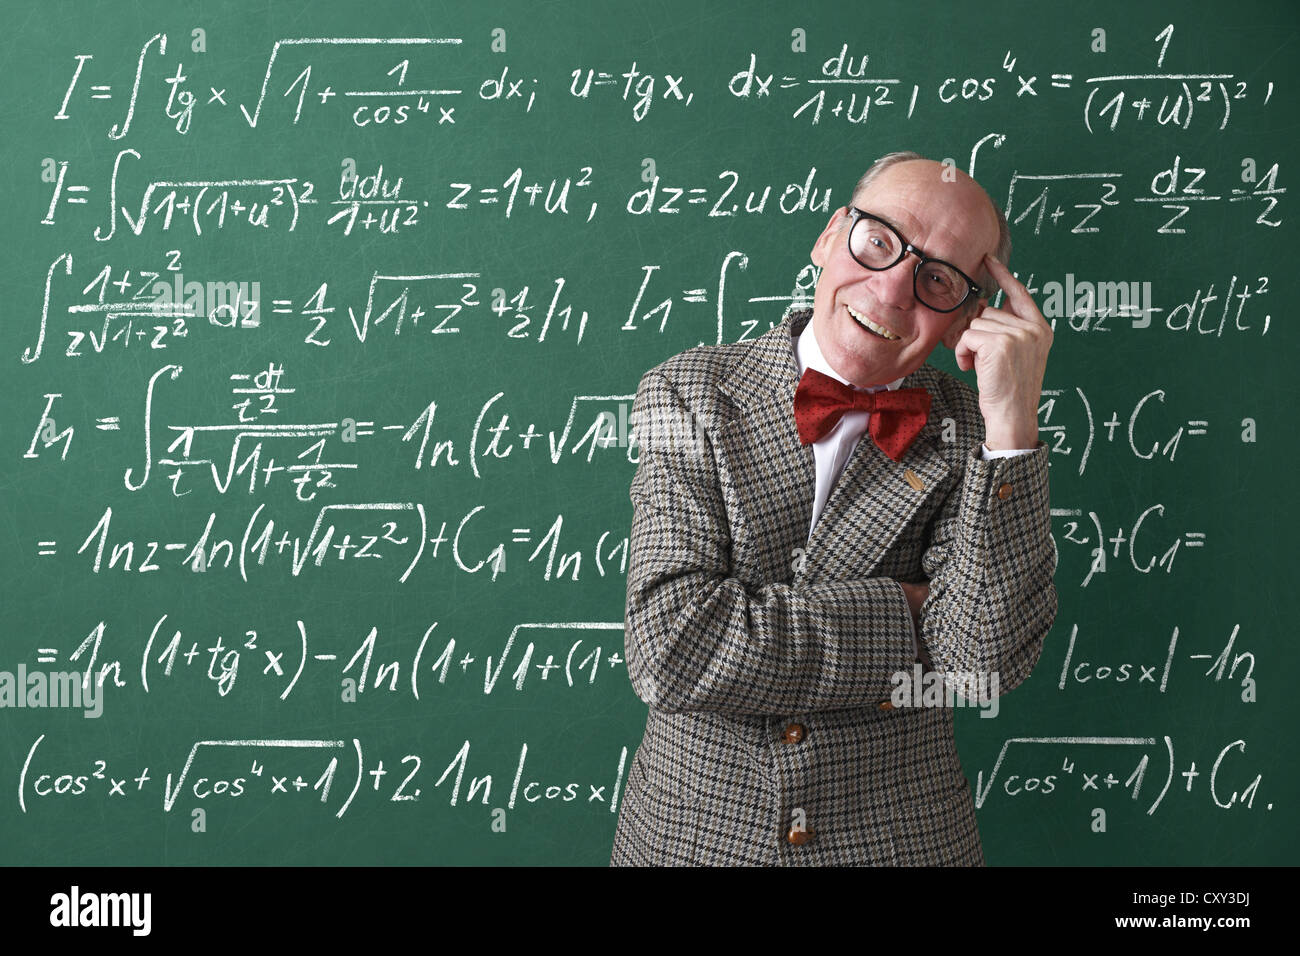 Professor, teacher, blackboard, mathematic formulas, equations, mathematic lessons, maths - Stock Image